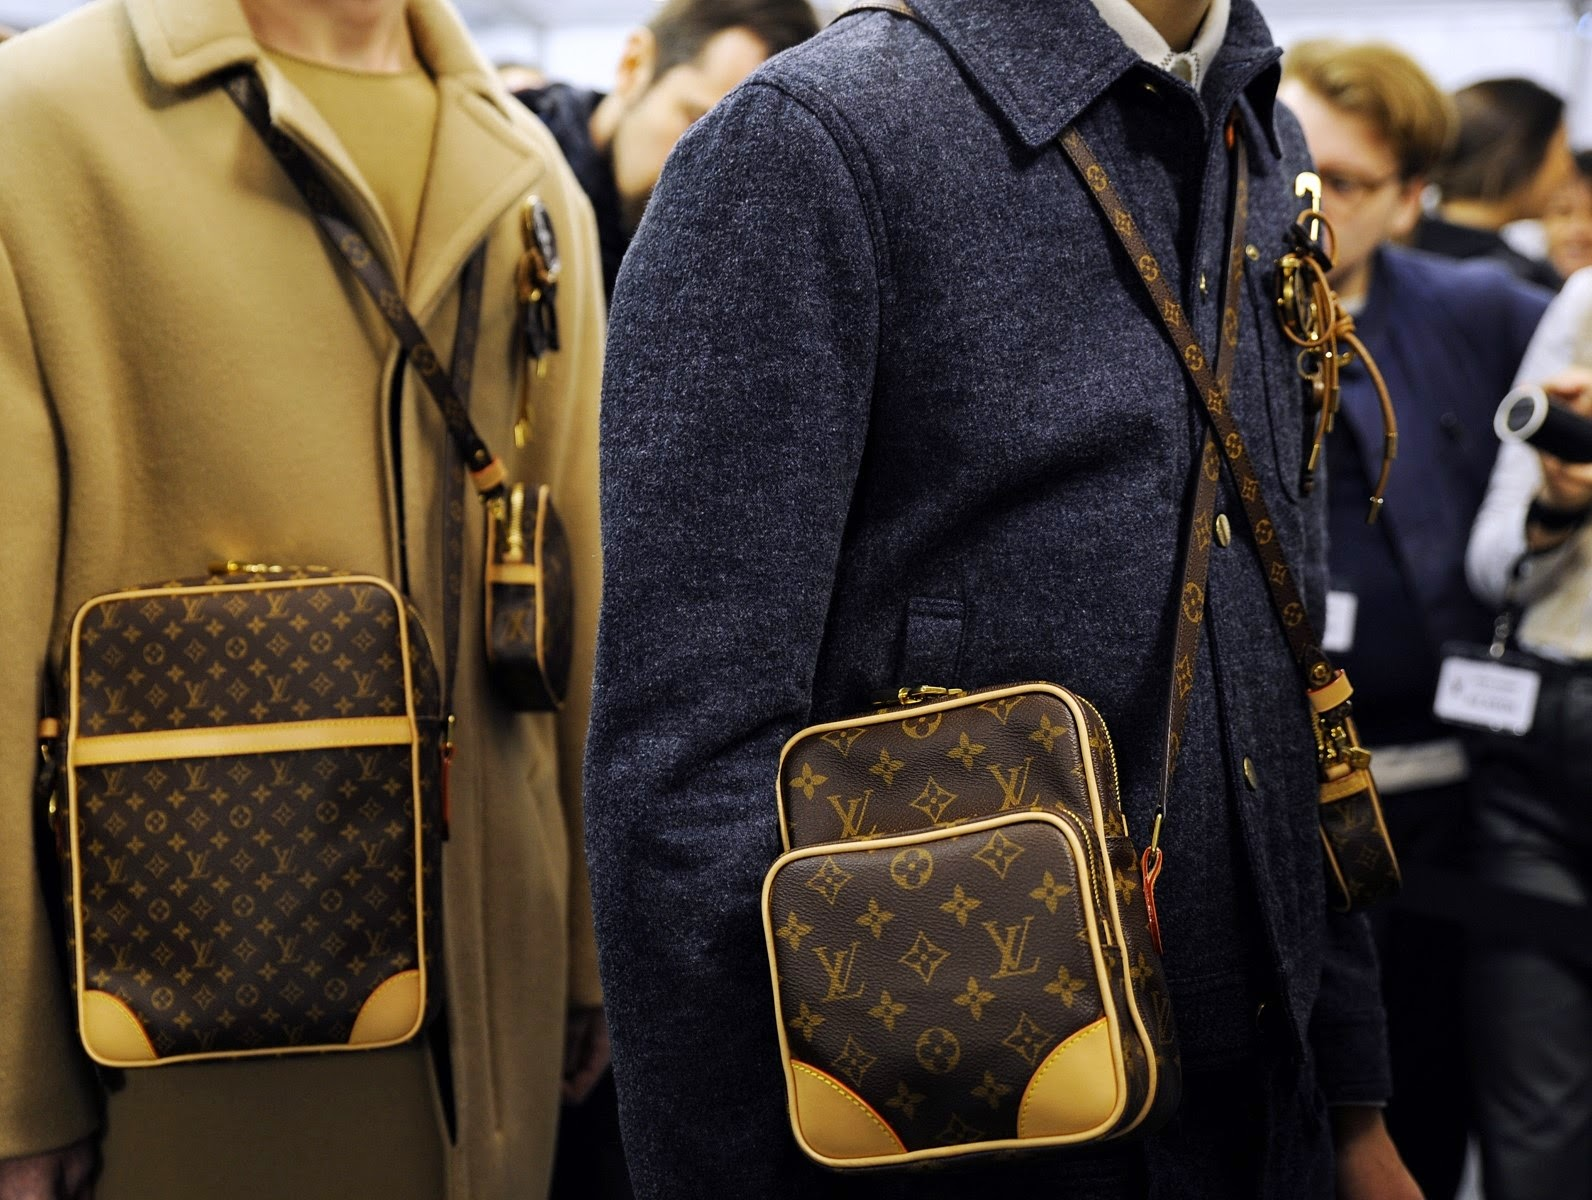 Louis Vuitton Men AW15, Louis Vuitton Men FW15, Louis Vuitton Men Fall Winter 2015, Louis Vuitton Men Autumn Winter 2015, Louis Vuitton Men, du dessin aux podiums, dudessinauxpodiums, LVLive, PFW, mode homme, menswear, habits, prêt-à-porter, tendance fashion, blog mode homme, magazine mode homme, site mode homme, conseil mode homme, doudoune homme, veste homme, chemise homme, louis vuitton sac, louis vuitton sac homme, louis vuitton chaussures, montre louis vuitton